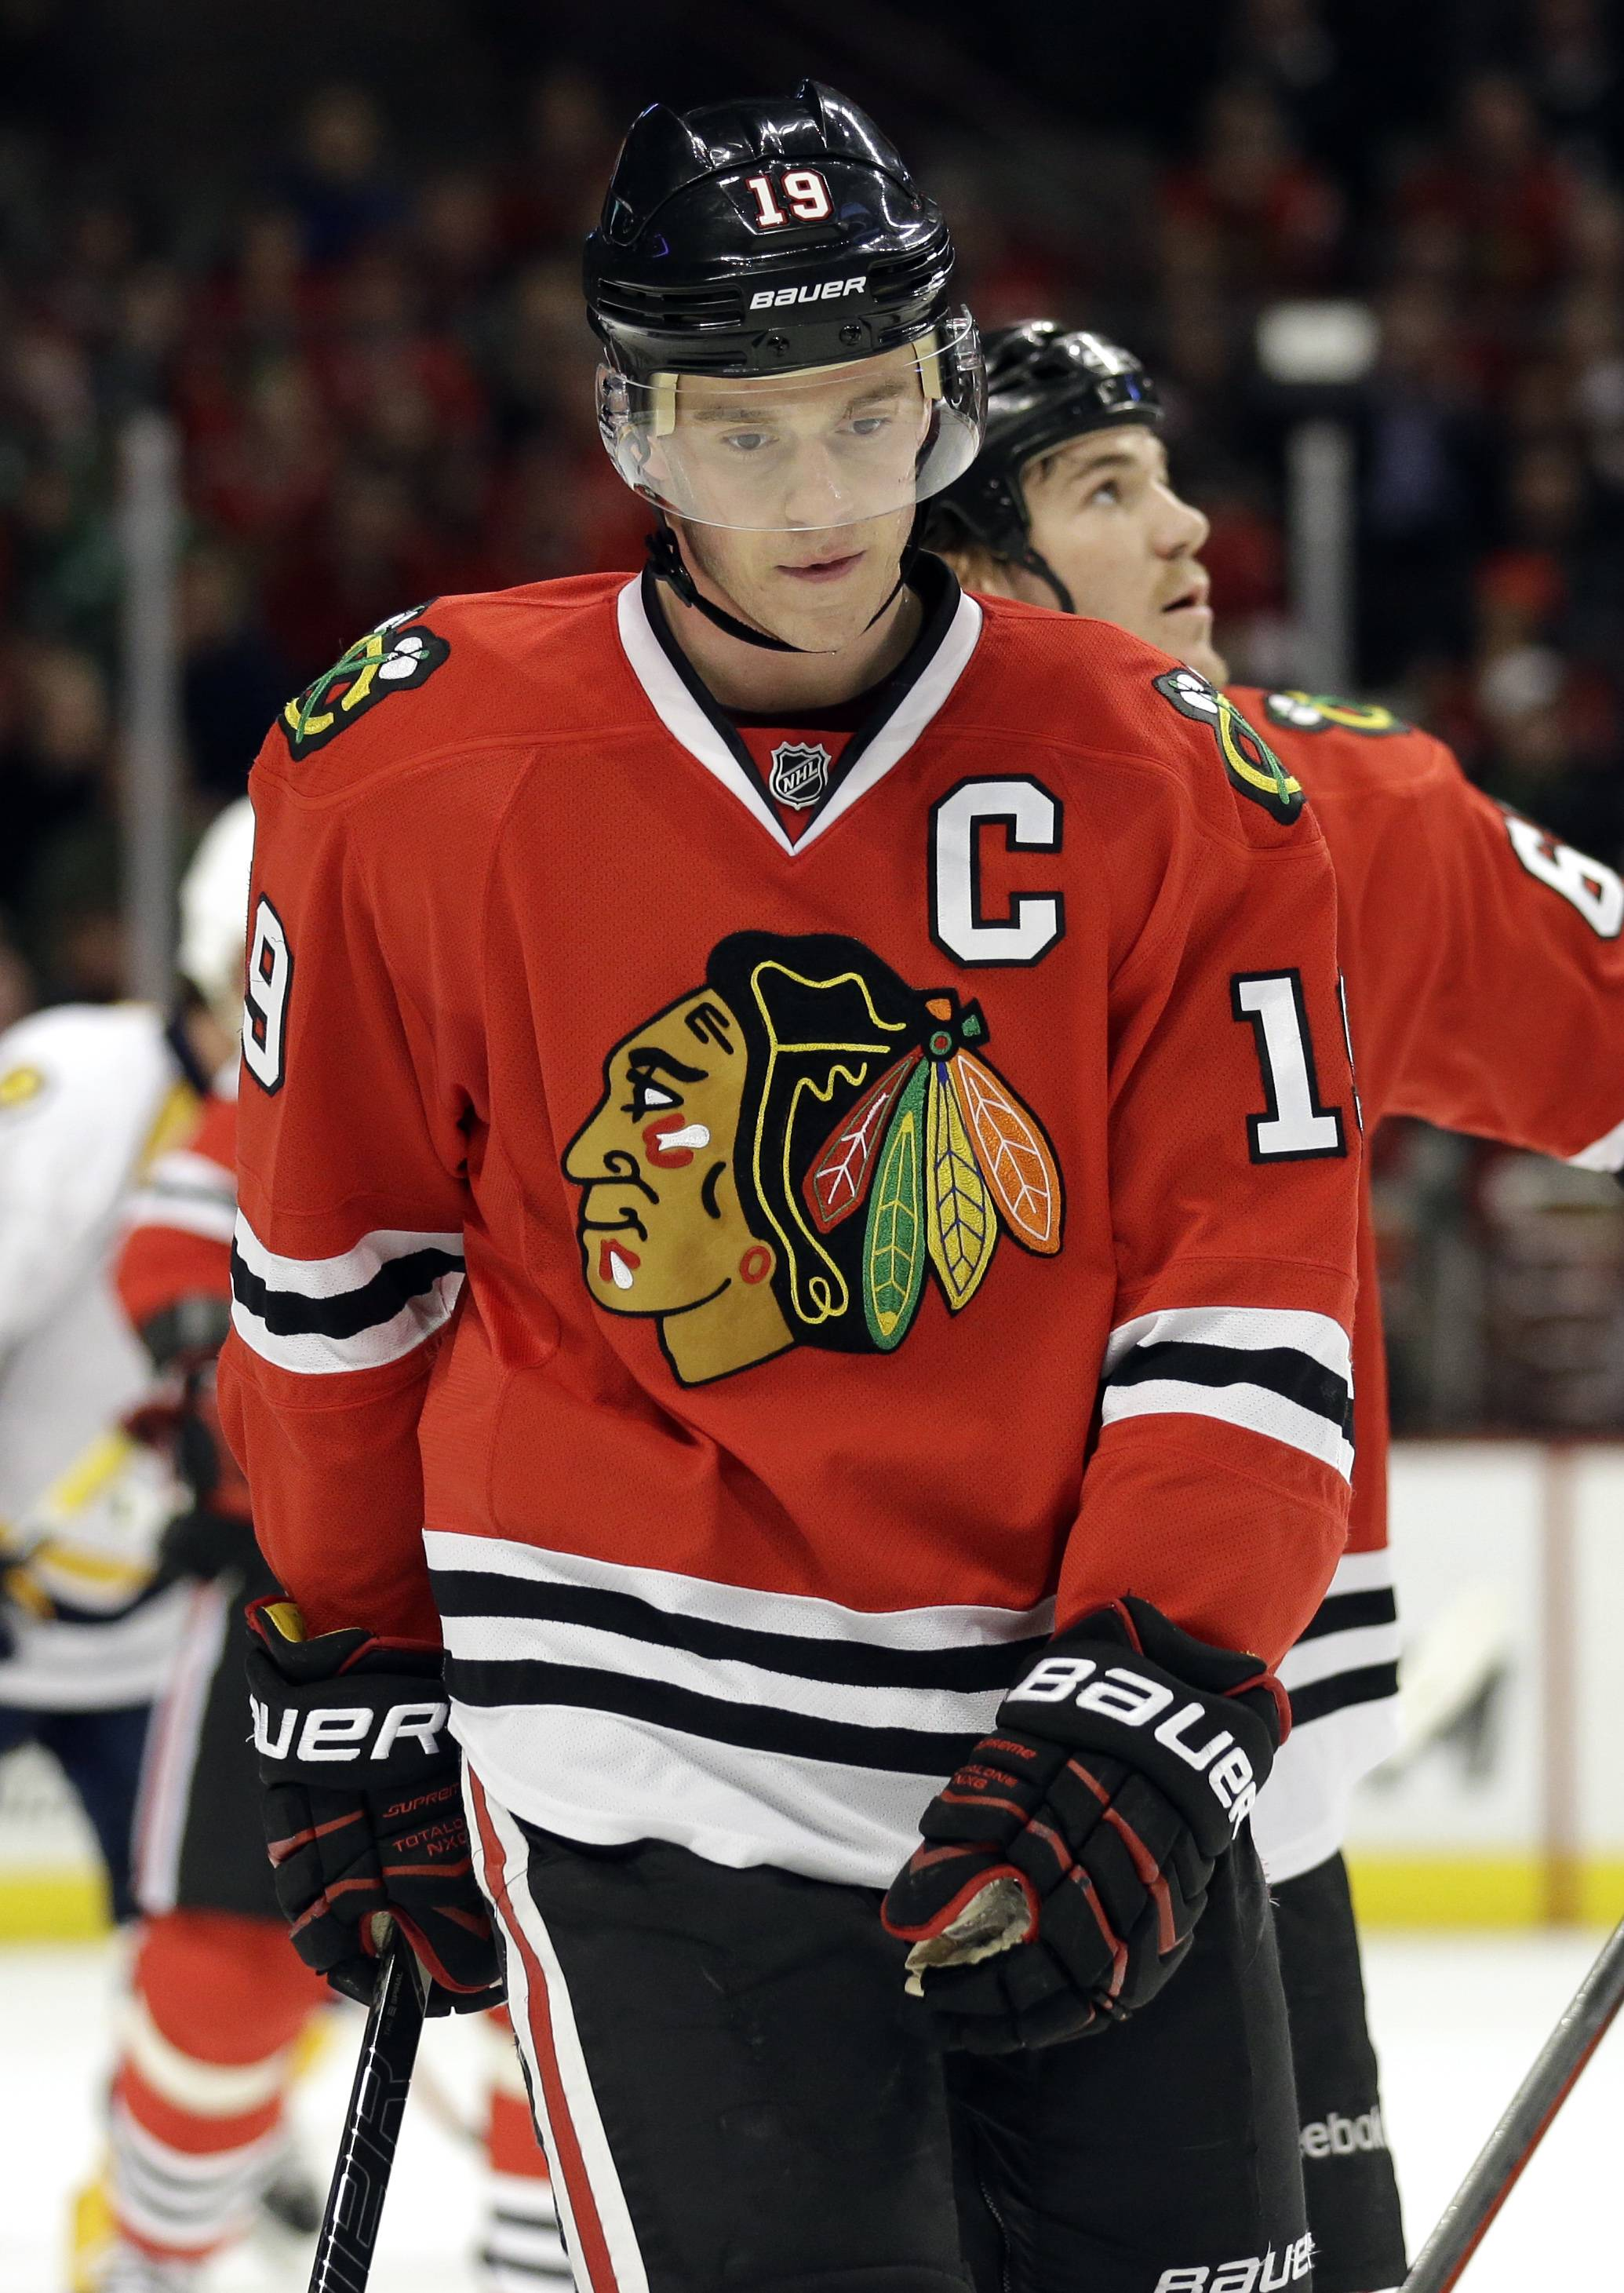 Blackhawks captain Jonathan Toews (19) will miss the final six games of the regular season, team officials said, but he is expected to be healthy when the playoffs begin.